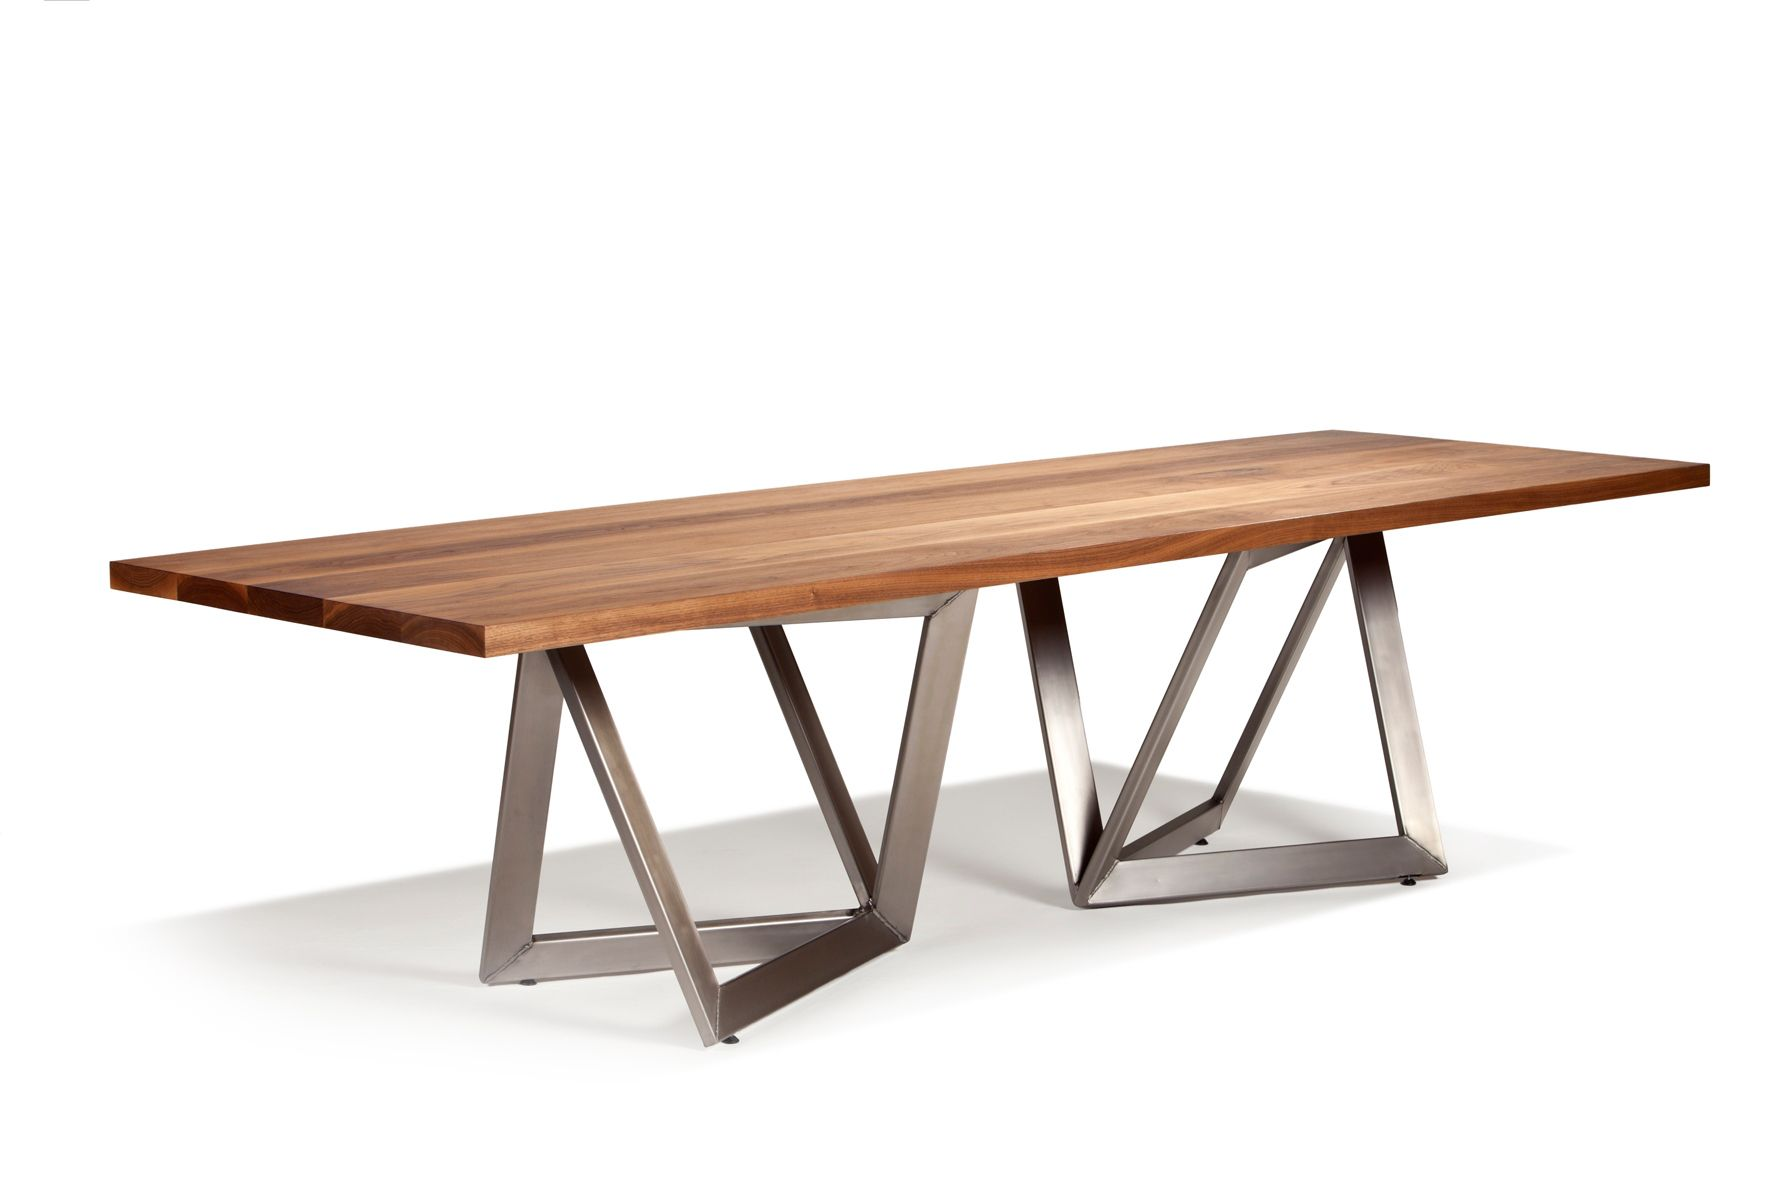 Aperture Metal Leg Dining Table Dining Table Dining Table Legs